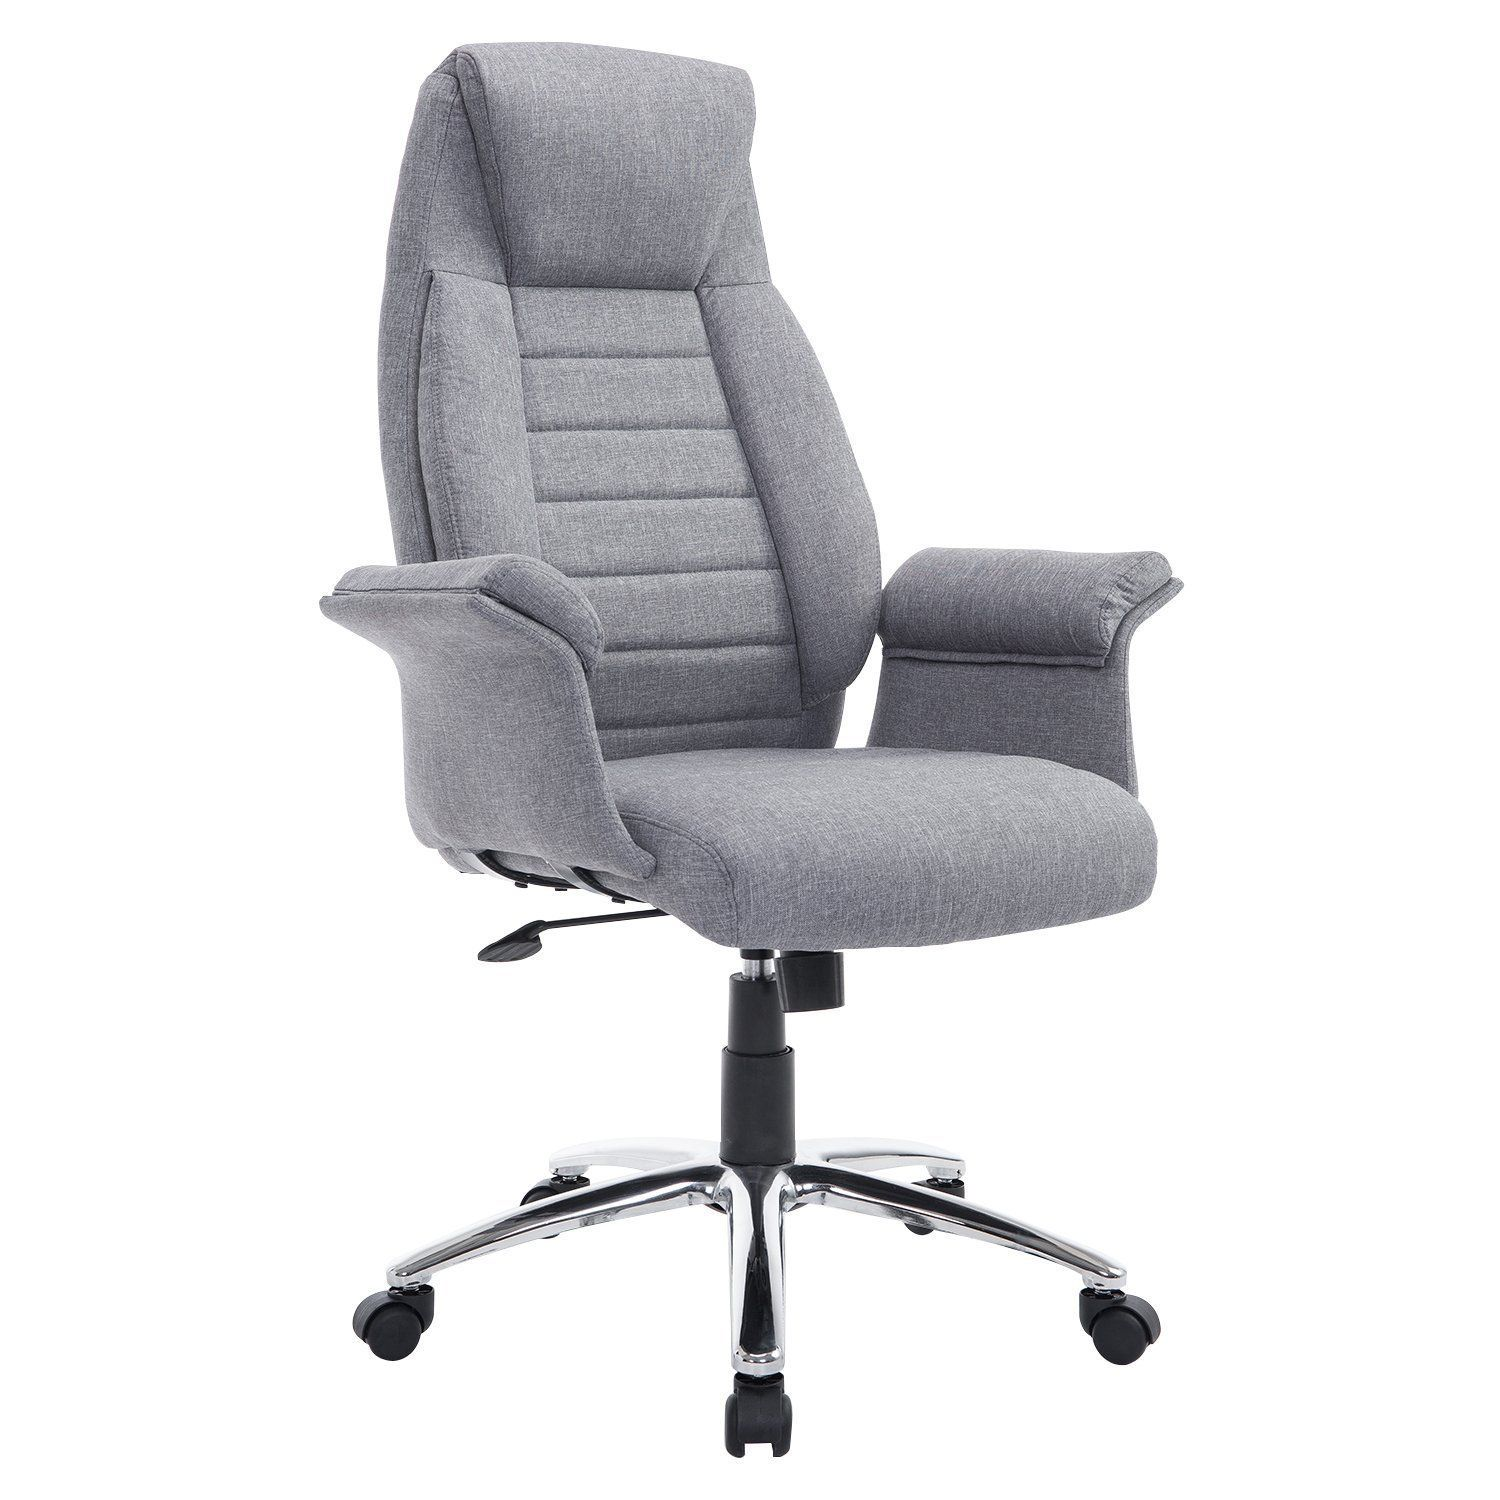 high back executive fabric office chair executive chair wooden rh pinterest com